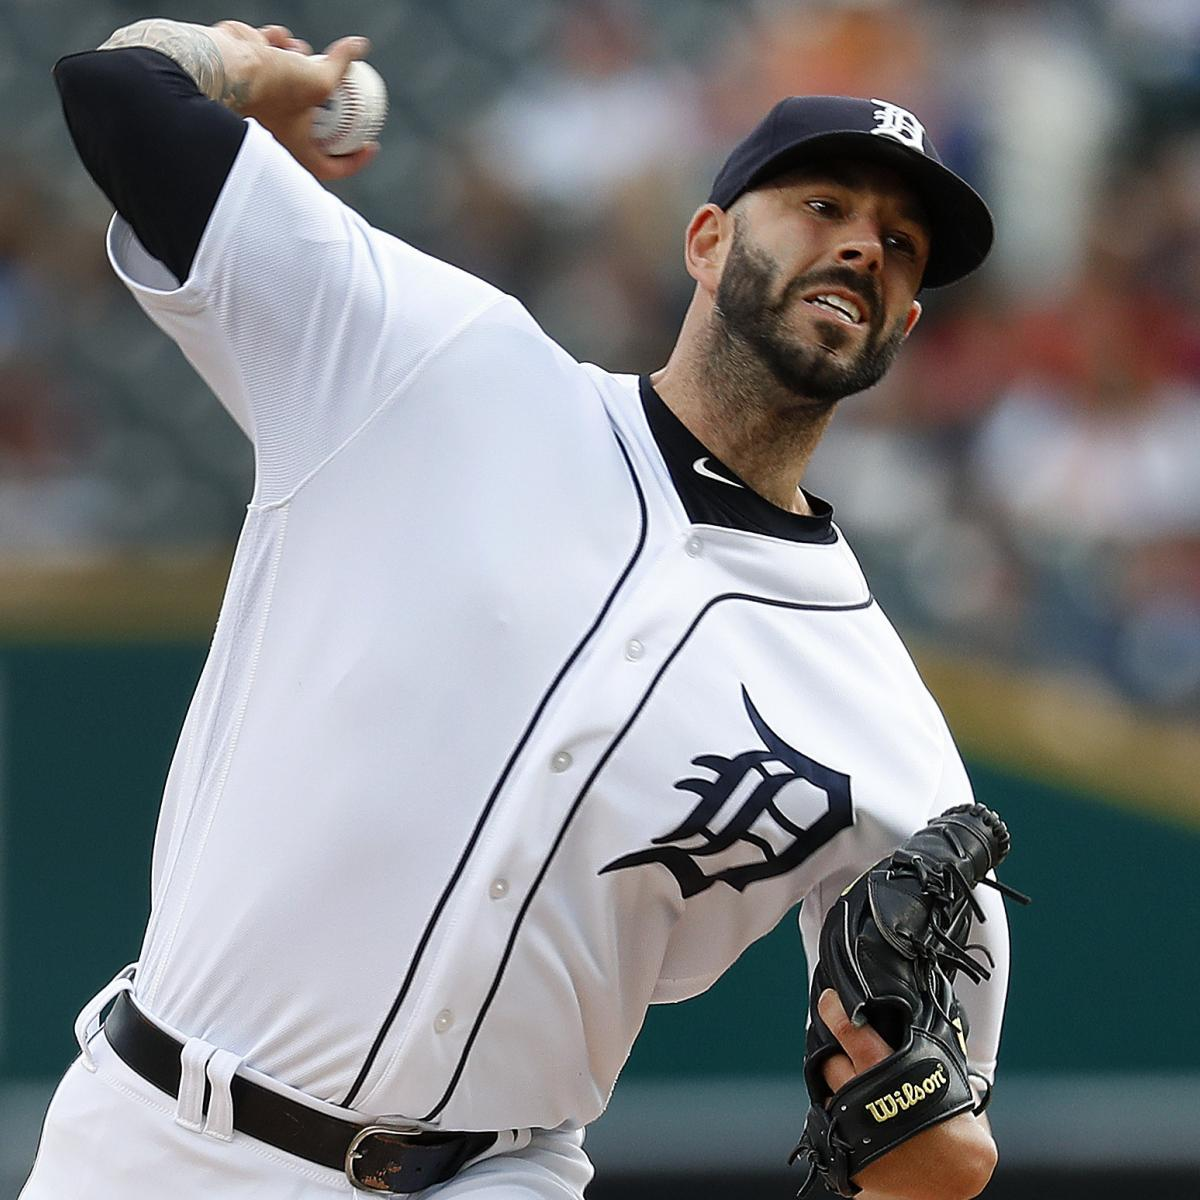 Mike Fiers Traded To Athletics From Tigers For 2 Players